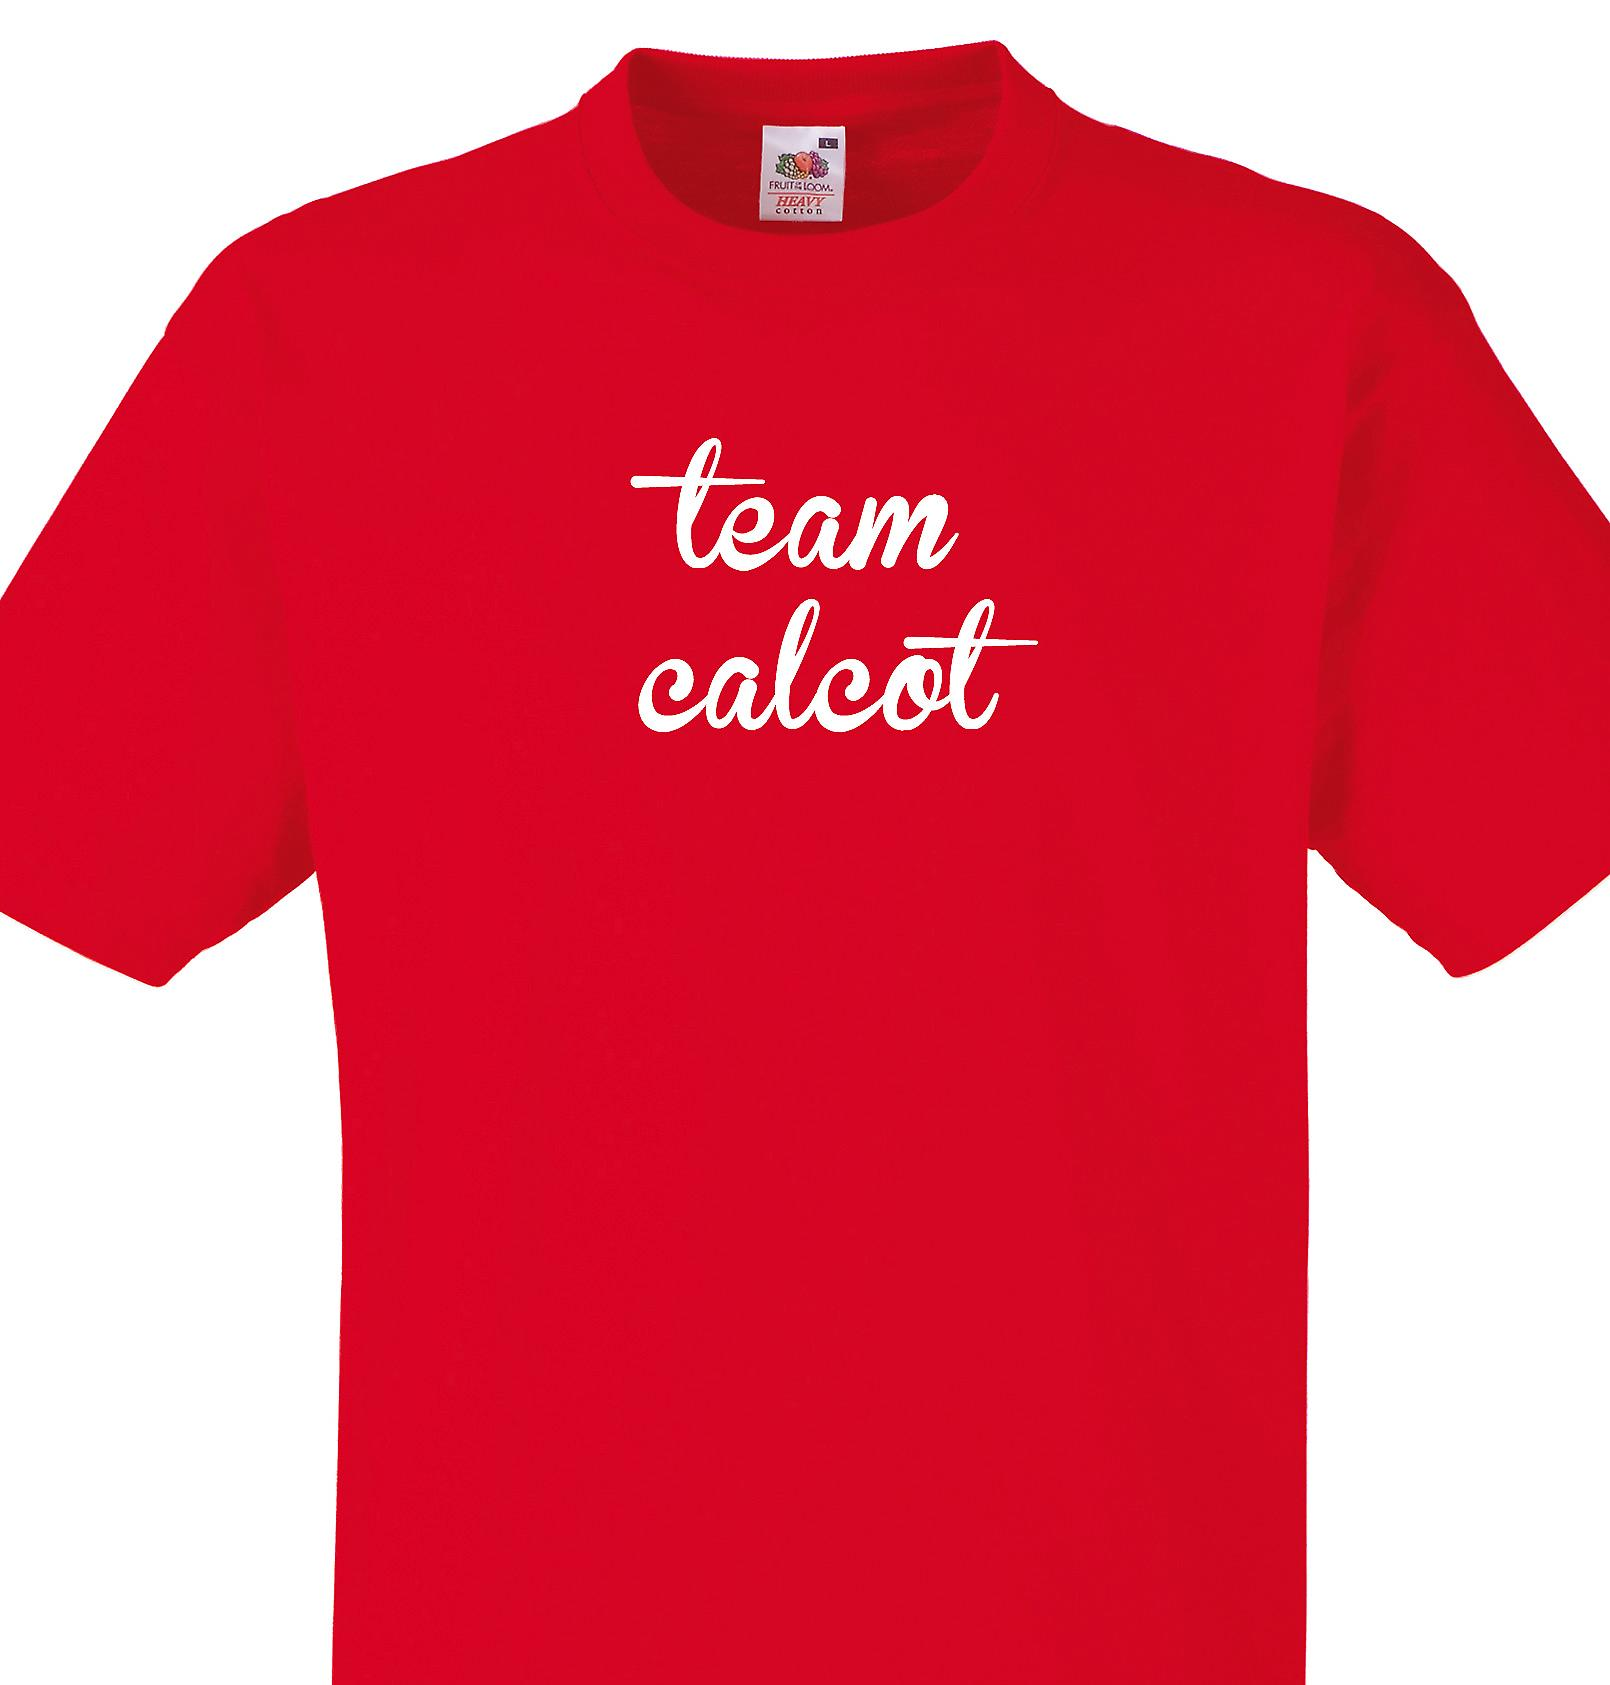 Team Calcot Red T shirt